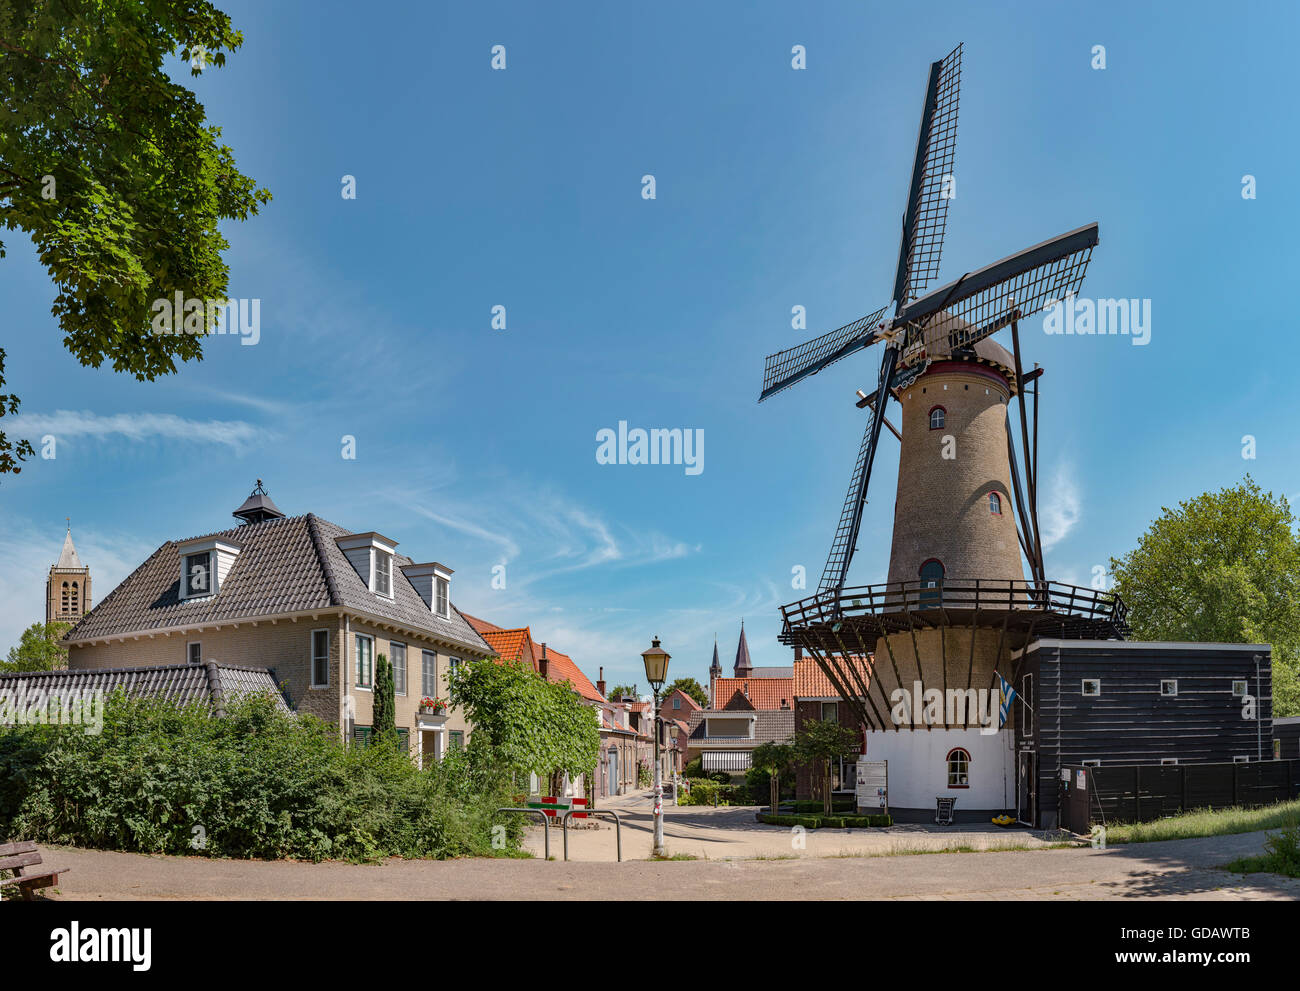 Tholen,Zeeland,The flax market with the tower mill called De Verwachting - Stock Image